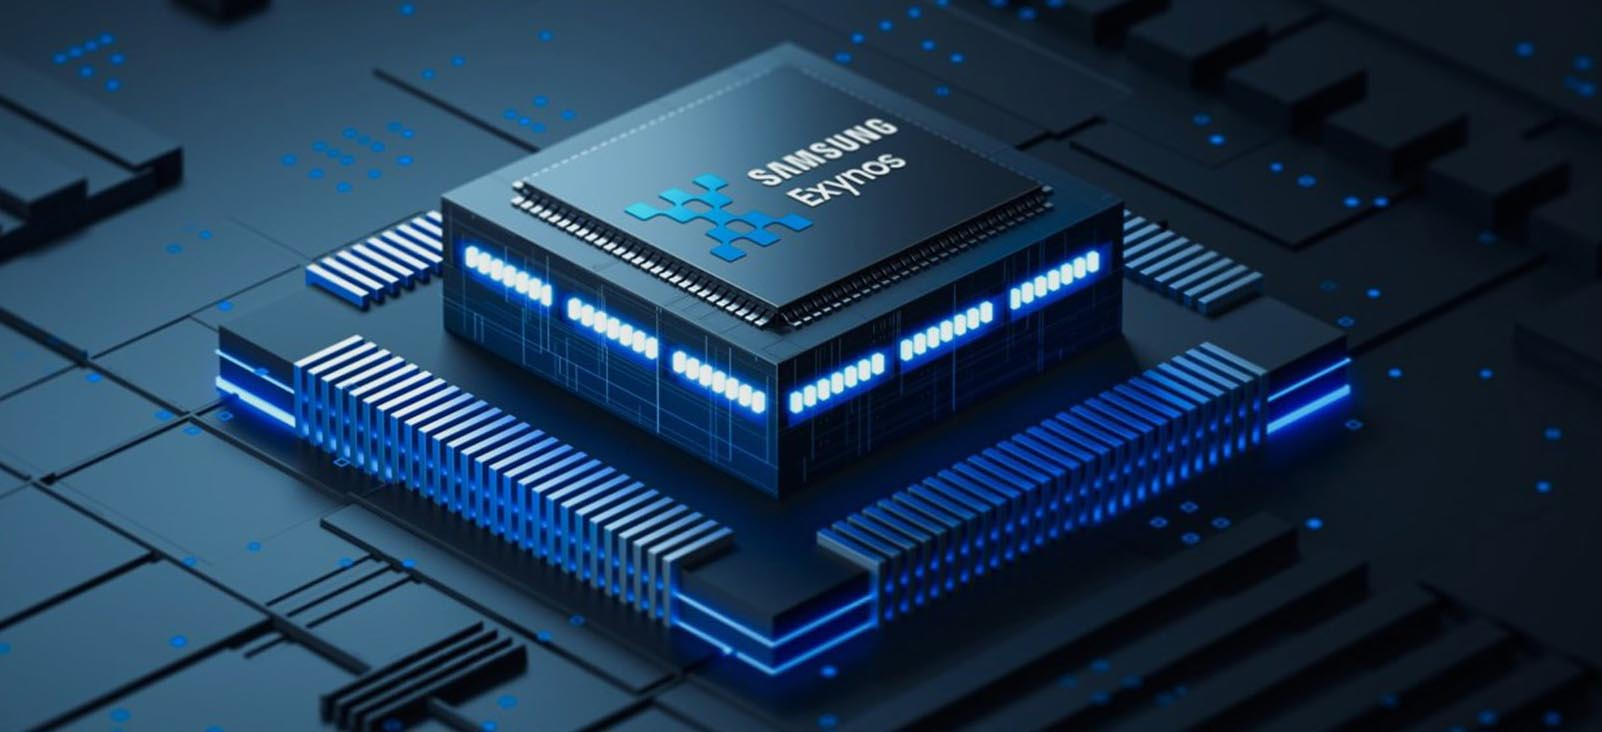 Exynos 2200 to Feature a 6-Core AMD RDNA2 GPU Designed to Deliver Unrivaled Graphics Performance